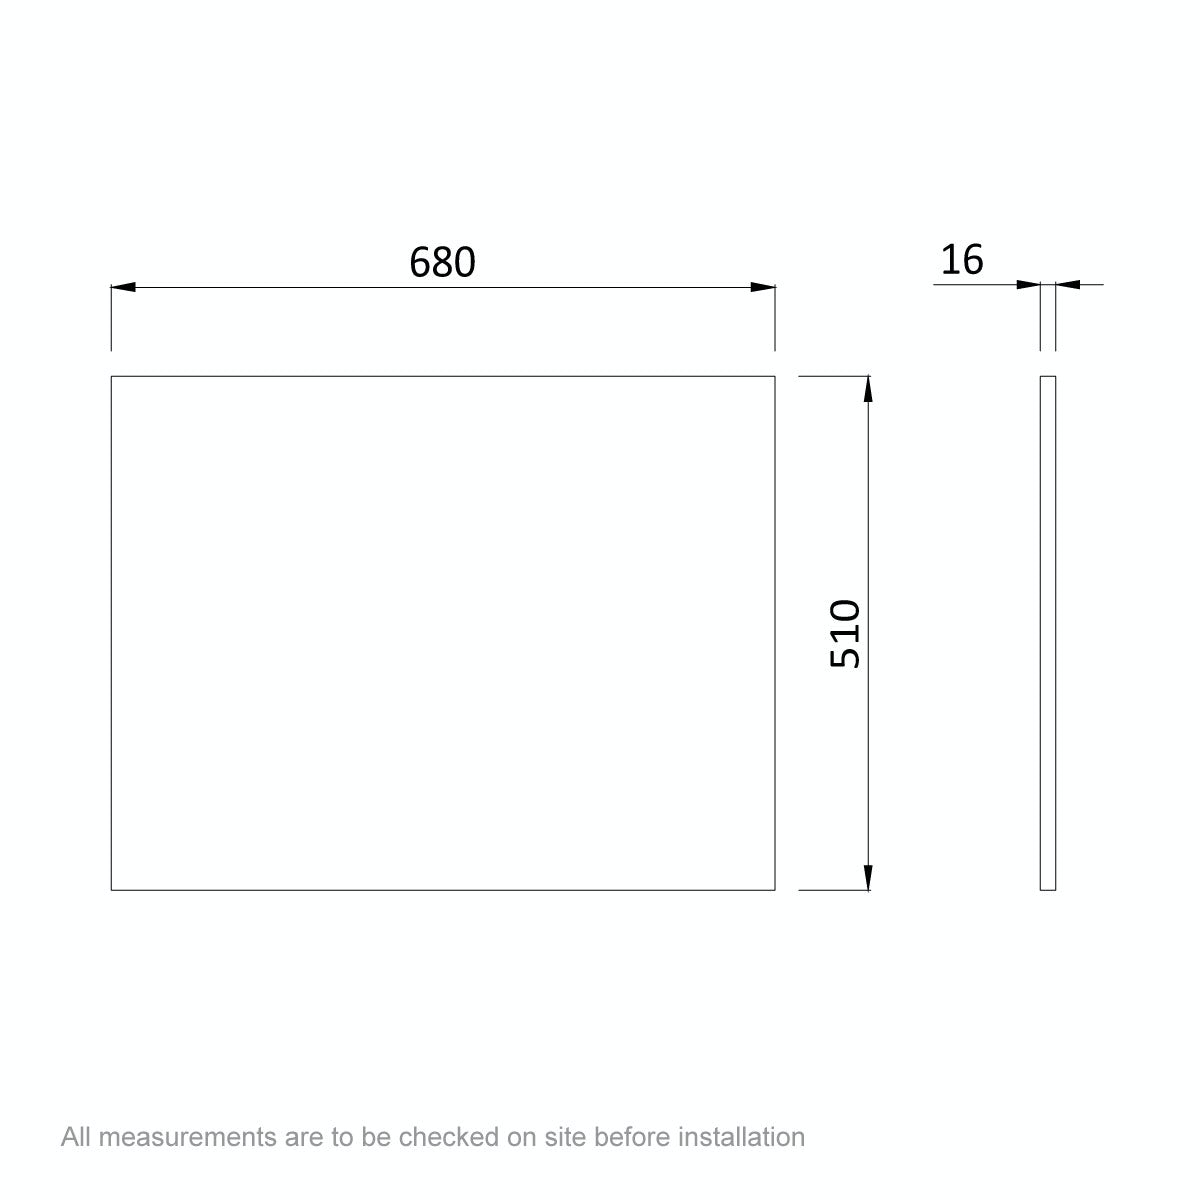 Dimensions for Orchard Wye essen shower bath end panel 680mm